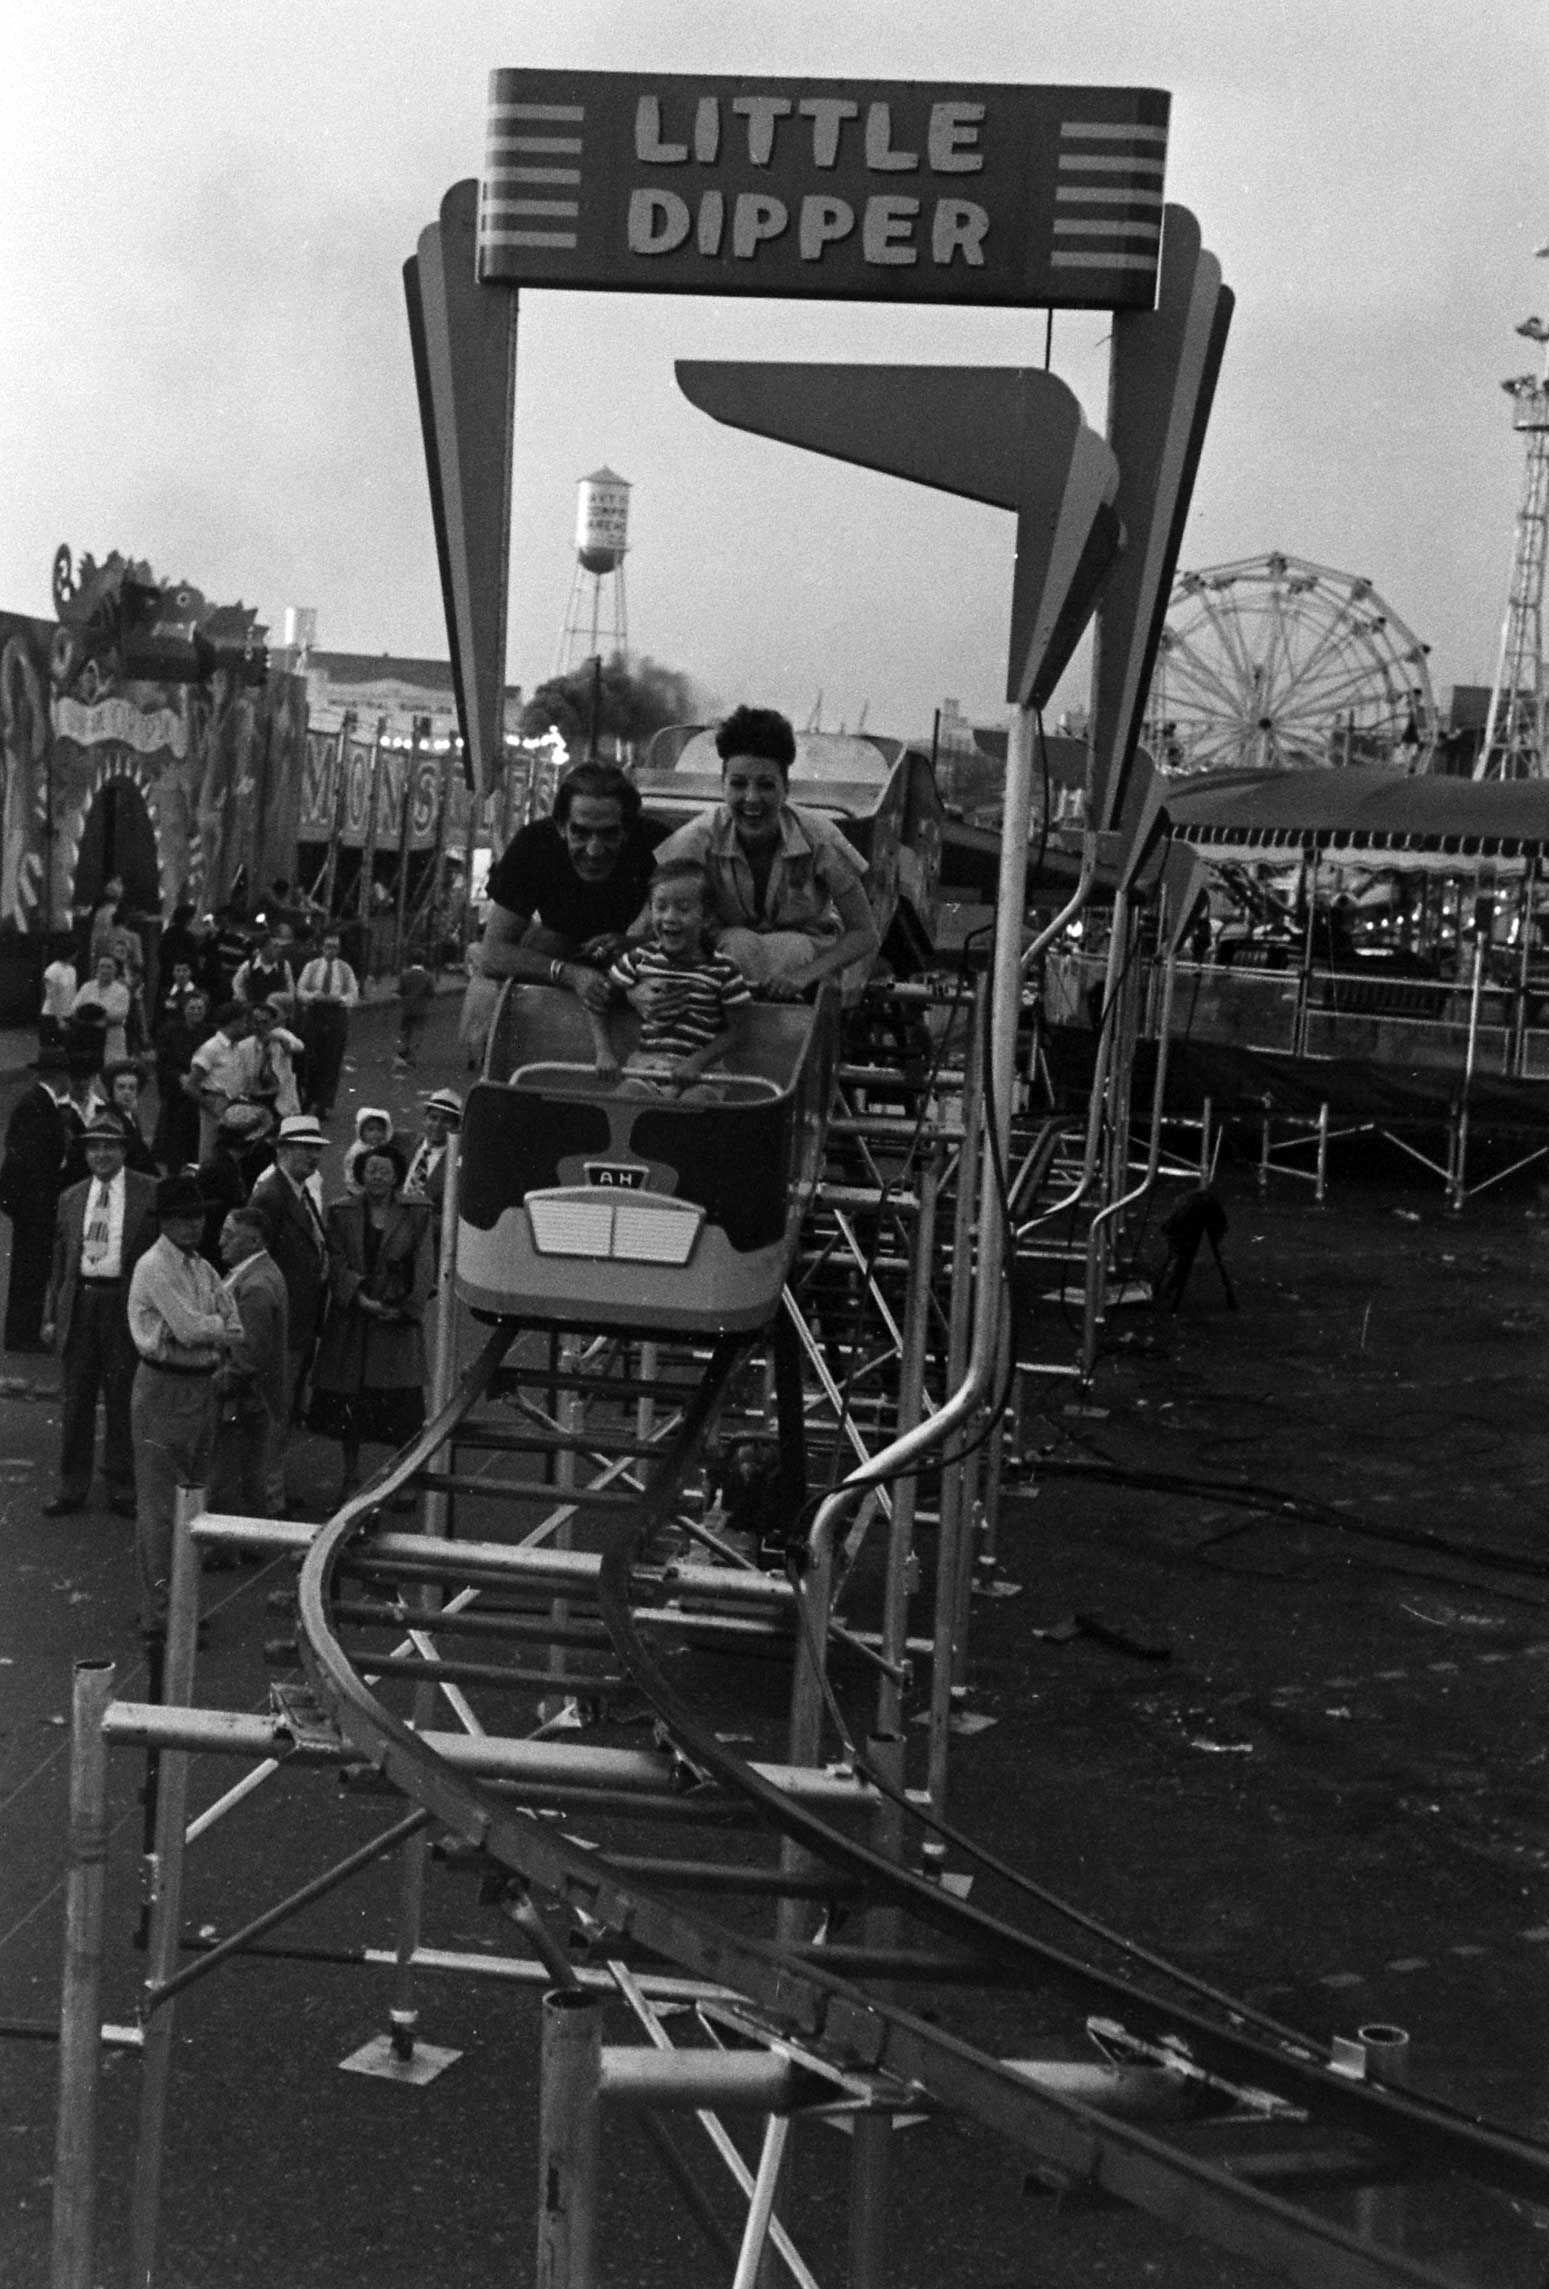 <b>Not published in LIFE.</b> Gypsy Rose rides the Little Dipper with her son, Erik, and her husband, Julio, in Memphis, Tenn., 1949.